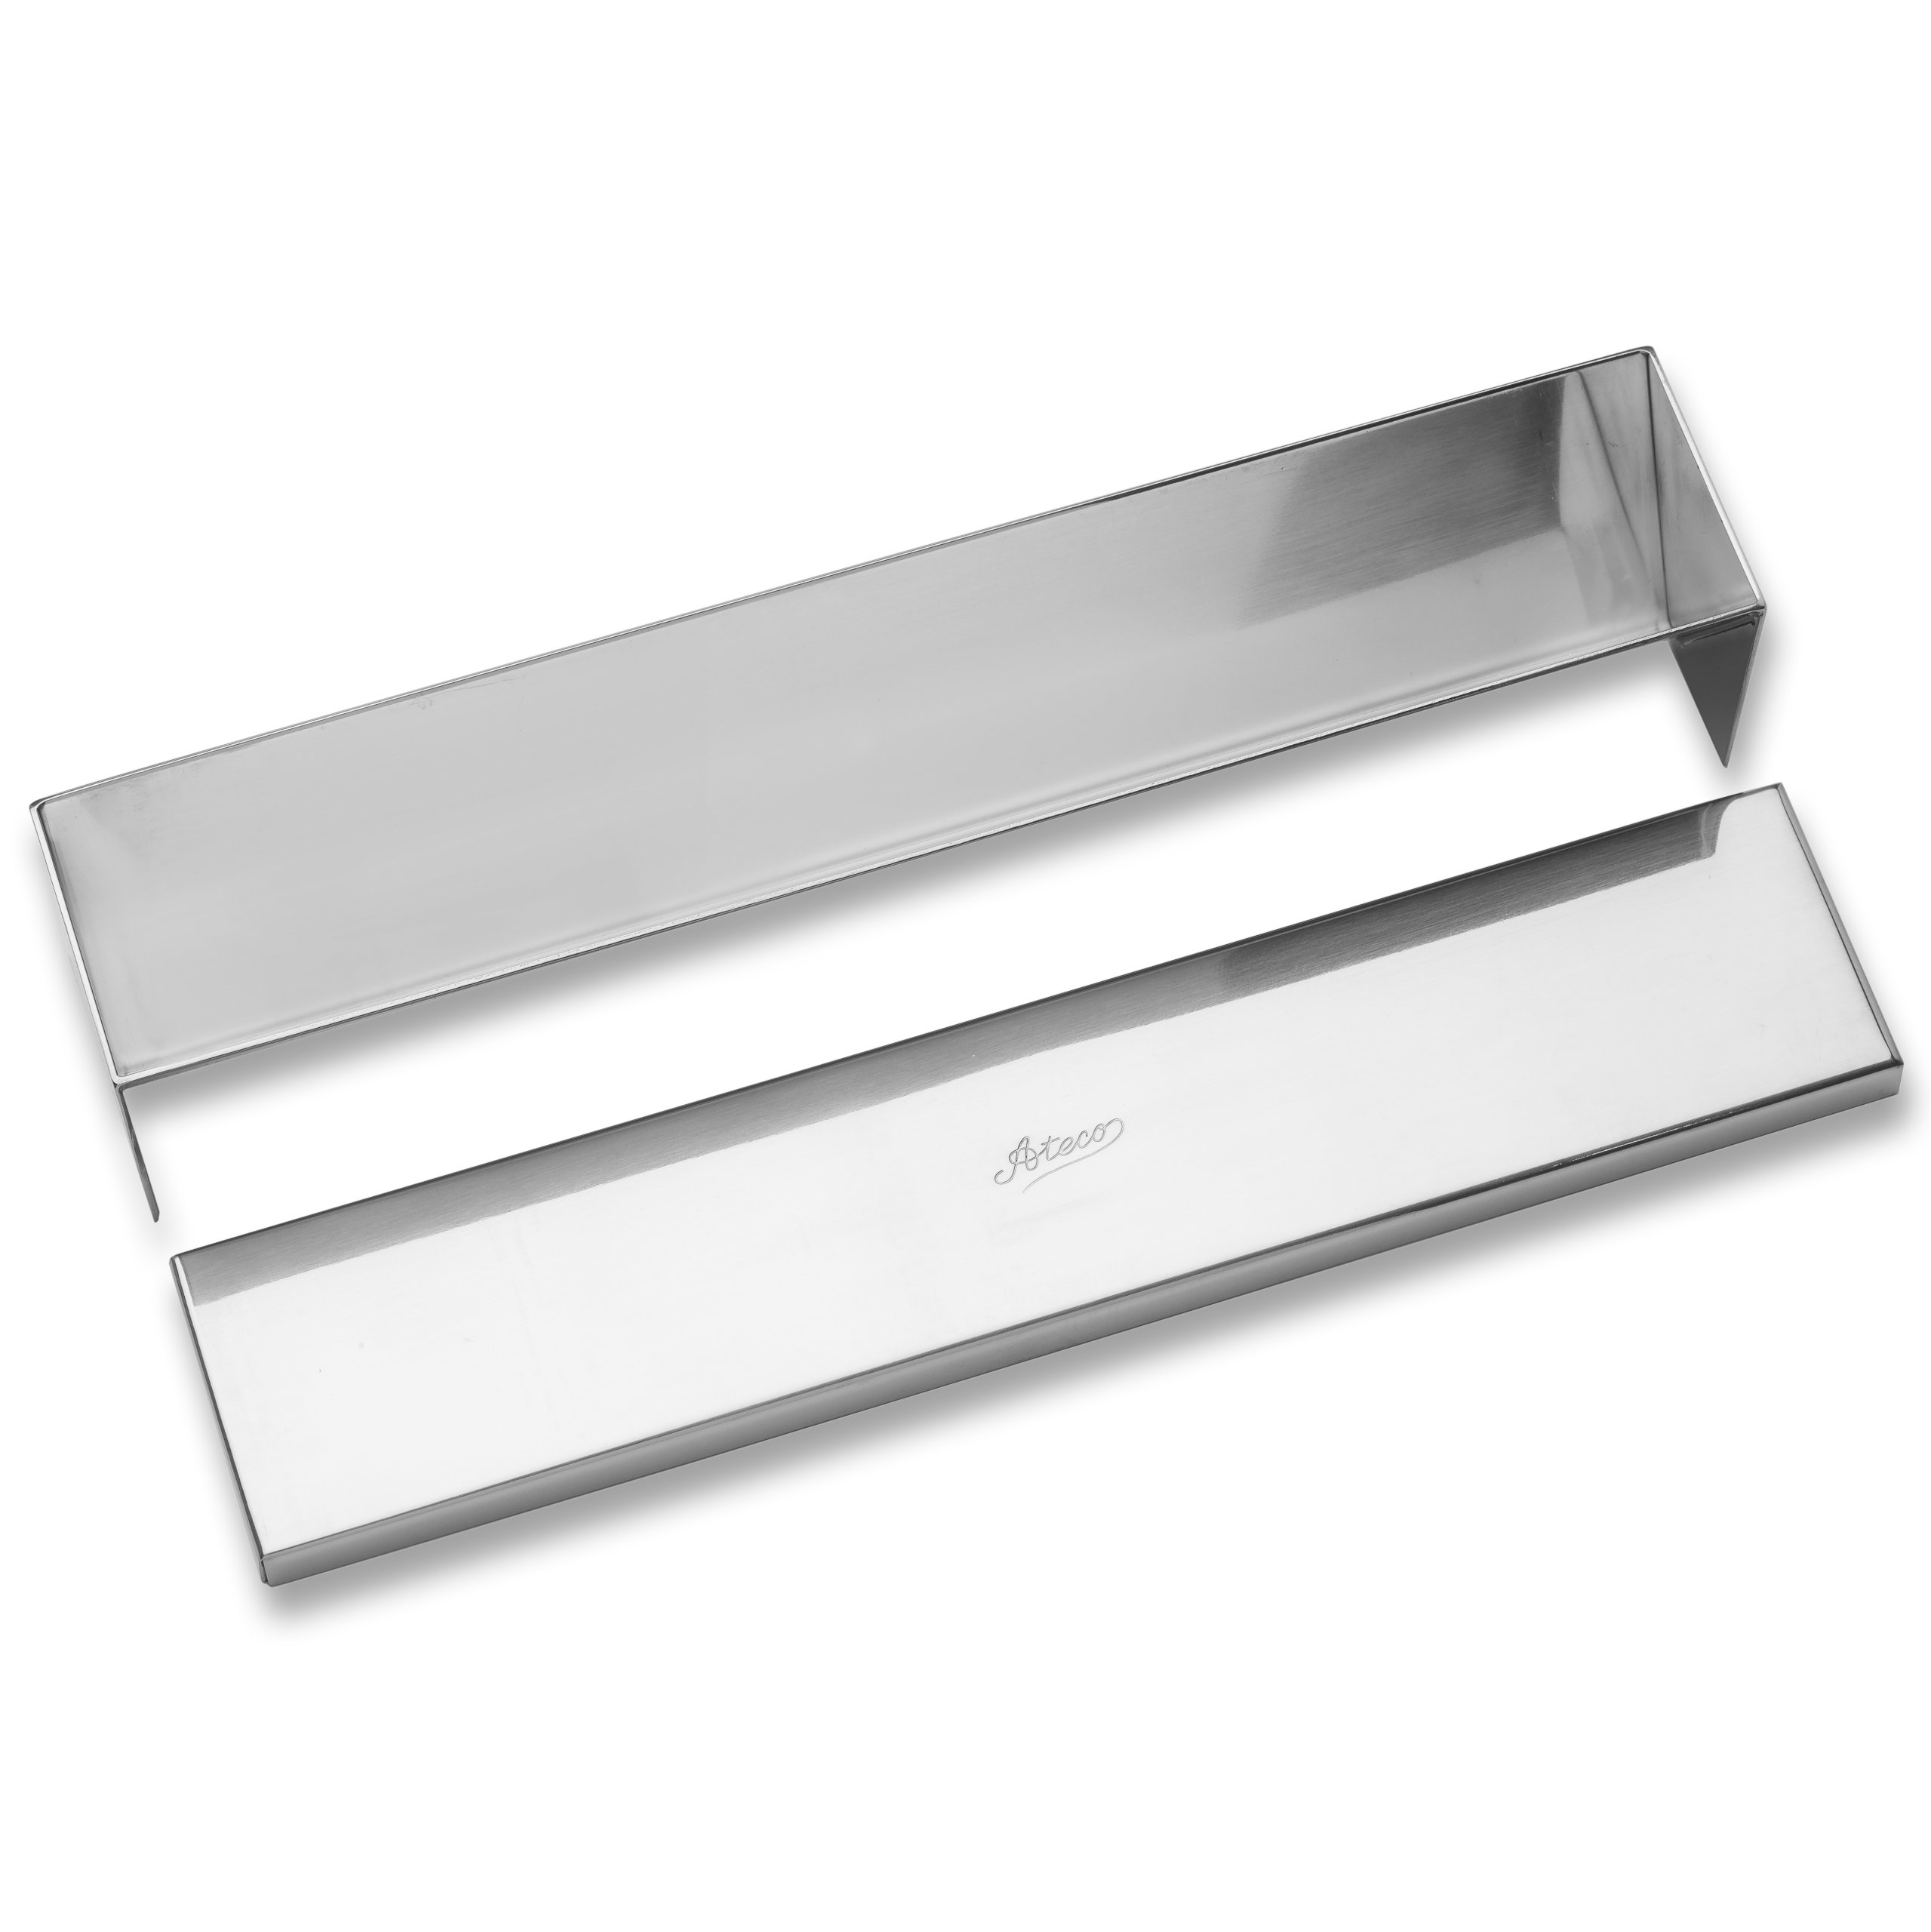 Ateco 4922 Stainless Steel Terrine Mold with Cover, Cone Shaped Bottom, 11.75 by 2.25-Inches